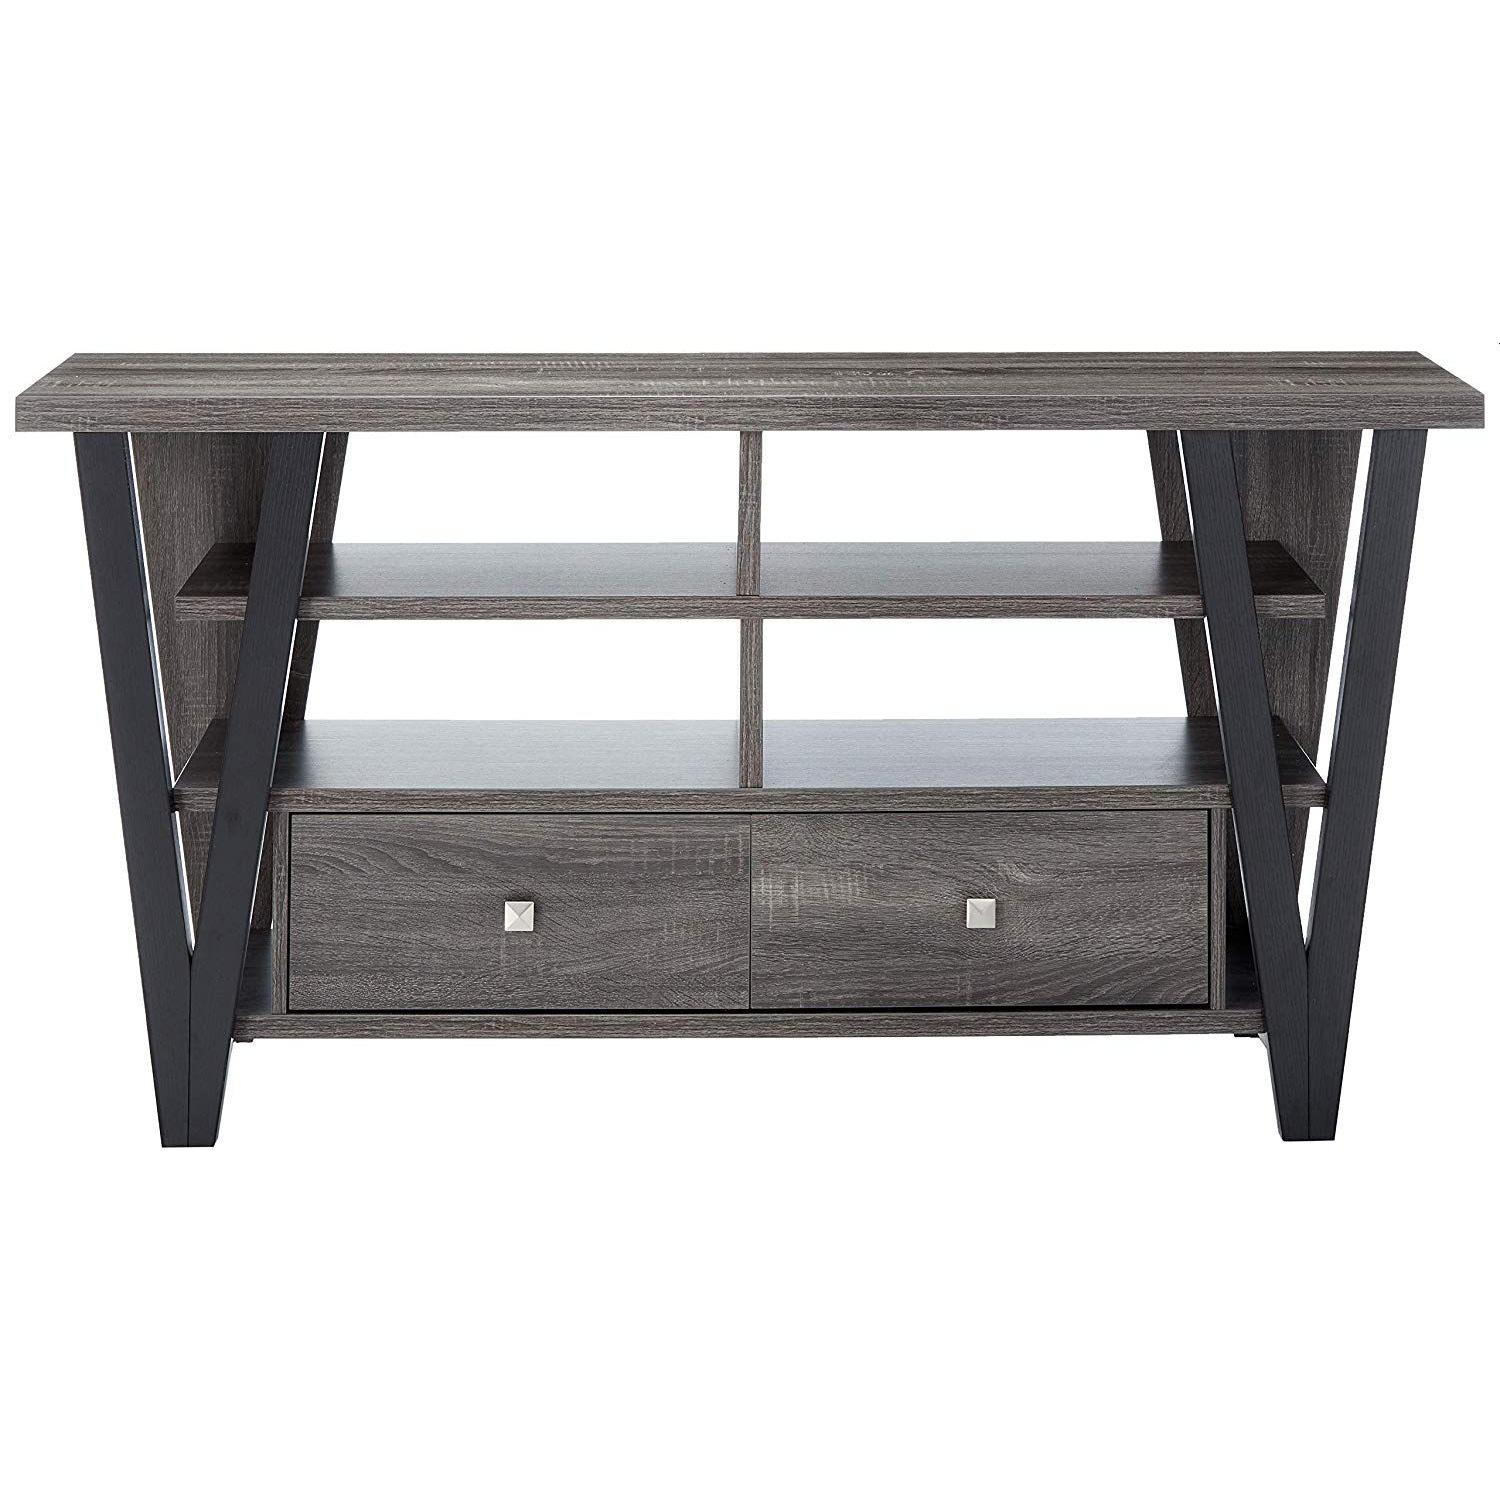 Modern TV Stand in Grey-Black Finish w/ Shelves & Drawers - image-1